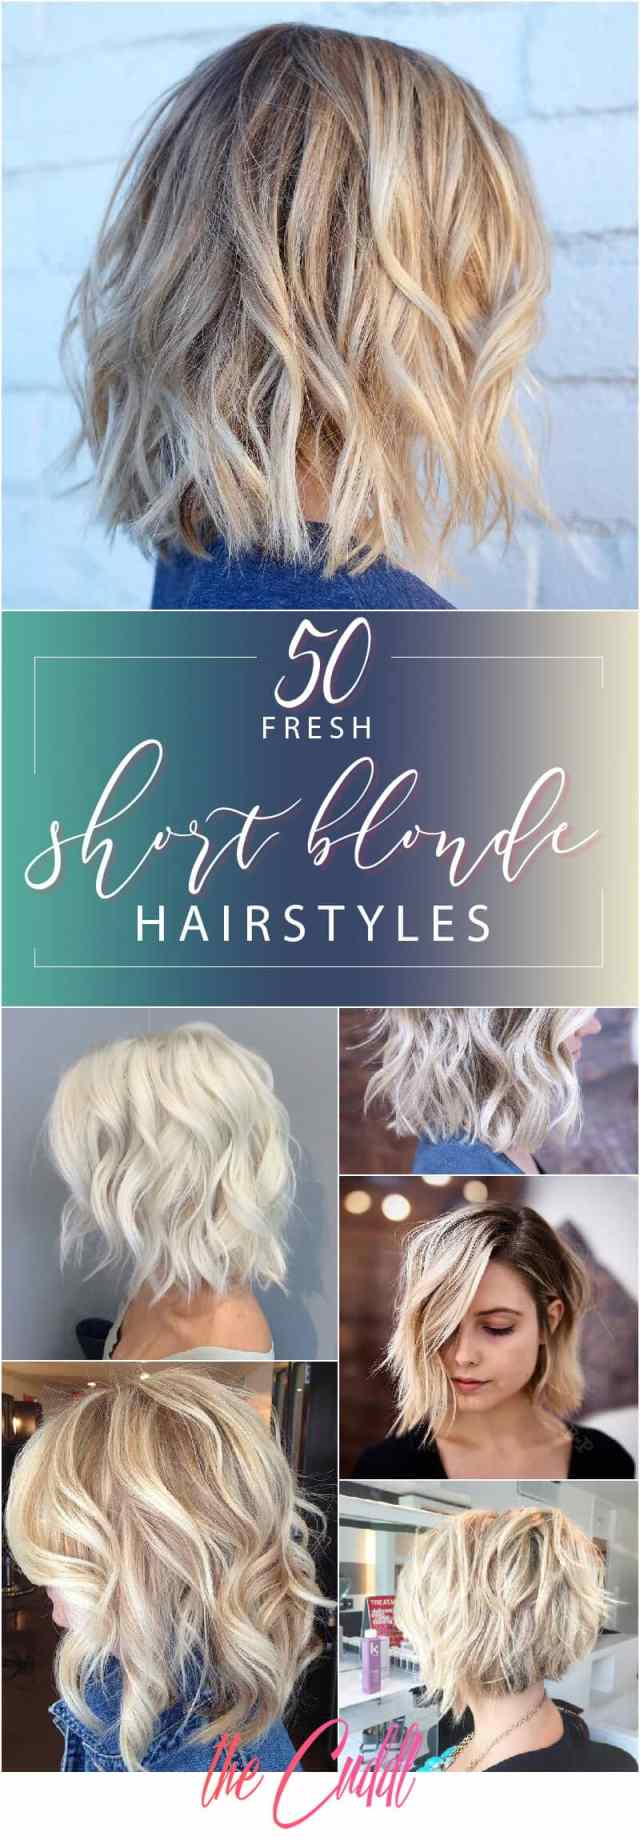 50 fresh short blonde hair ideas to update your style in 2019